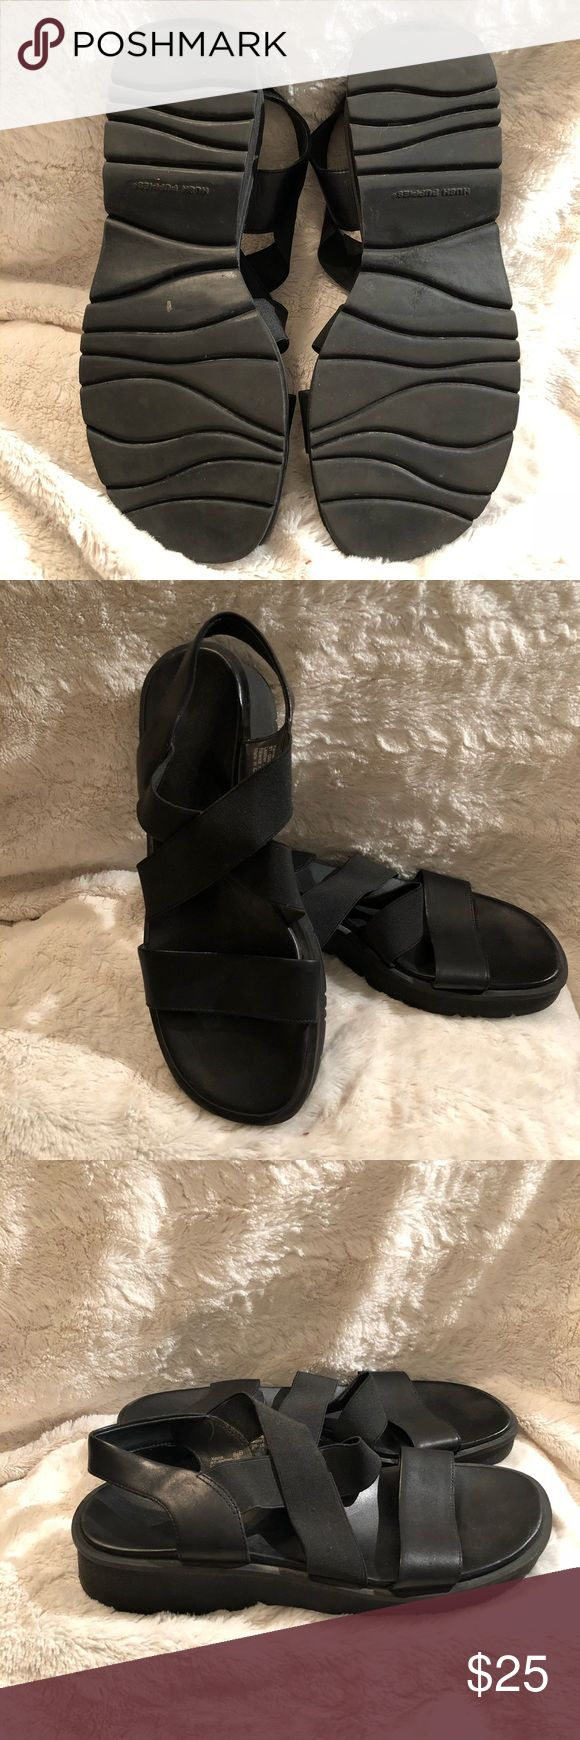 🆕 HUSH PUPPIES BLACK STRAPY LOW HEEL SANDAL Hush Puppy Black STRAPY Sandal➖Size 8 1/2➖Black Leather Strap Across Toes➖Thicker Fabric Criss Cross Strap Across Top of Foot➖Lower Heel➖Very Comfortable➖Worn Couple Times Hush Puppies Shoes Sandals